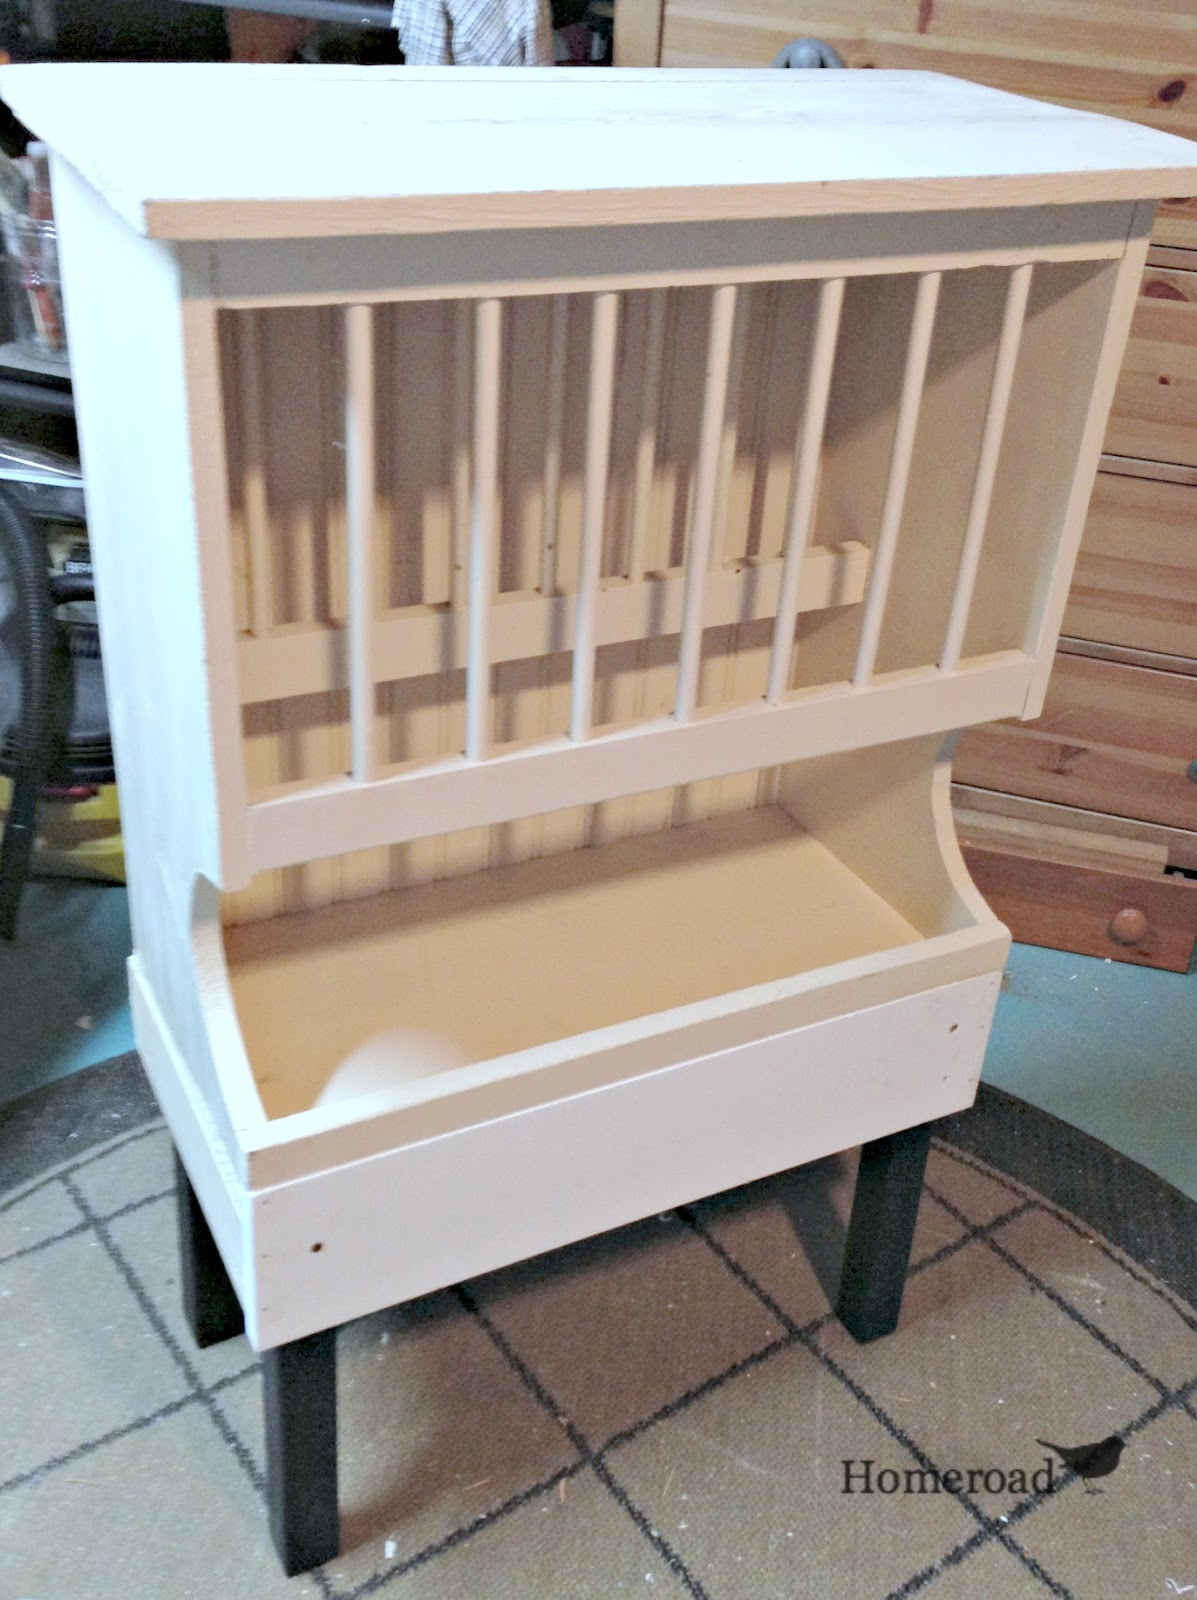 Dish Chair Dish Rack Furniture Hutch Homeroad